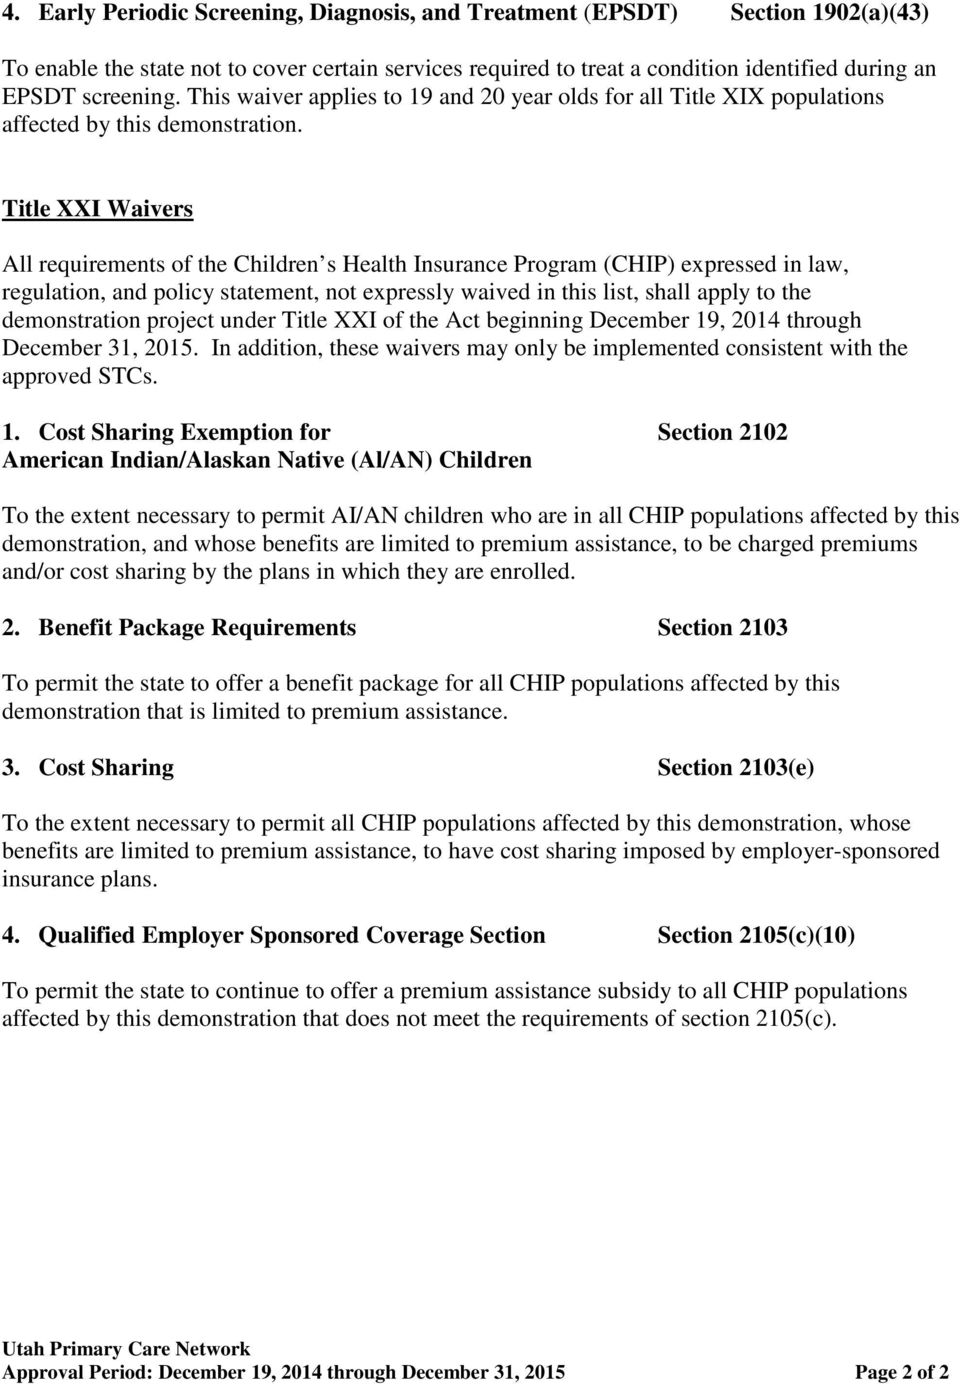 Title XXI Waivers All requirements of the Children s Health Insurance Program (CHIP) expressed in law, regulation, and policy statement, not expressly waived in this list, shall apply to the